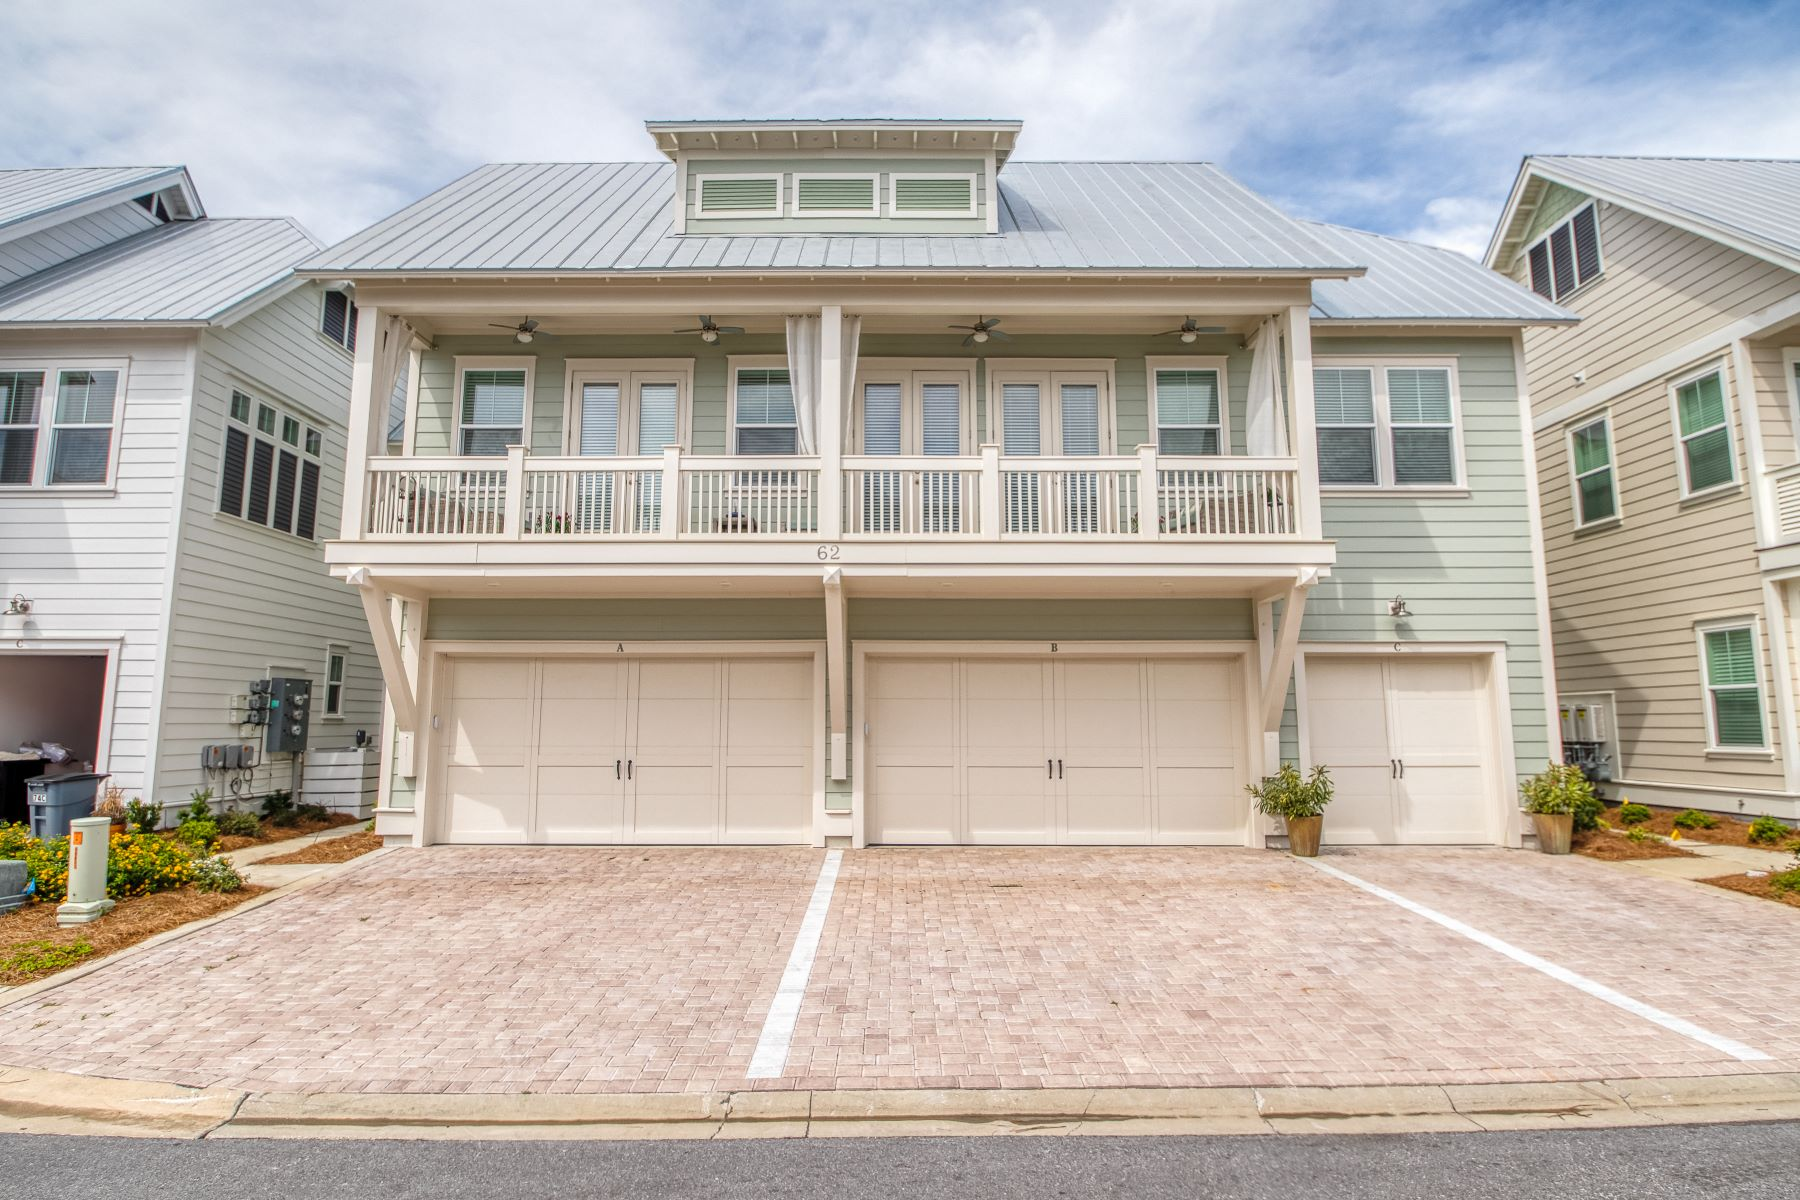 single family homes for Active at Turn-key Furnished Townhome in Prominence Near the Coast 62 Dune Comet Lane C Inlet Beach, Florida 32461 United States